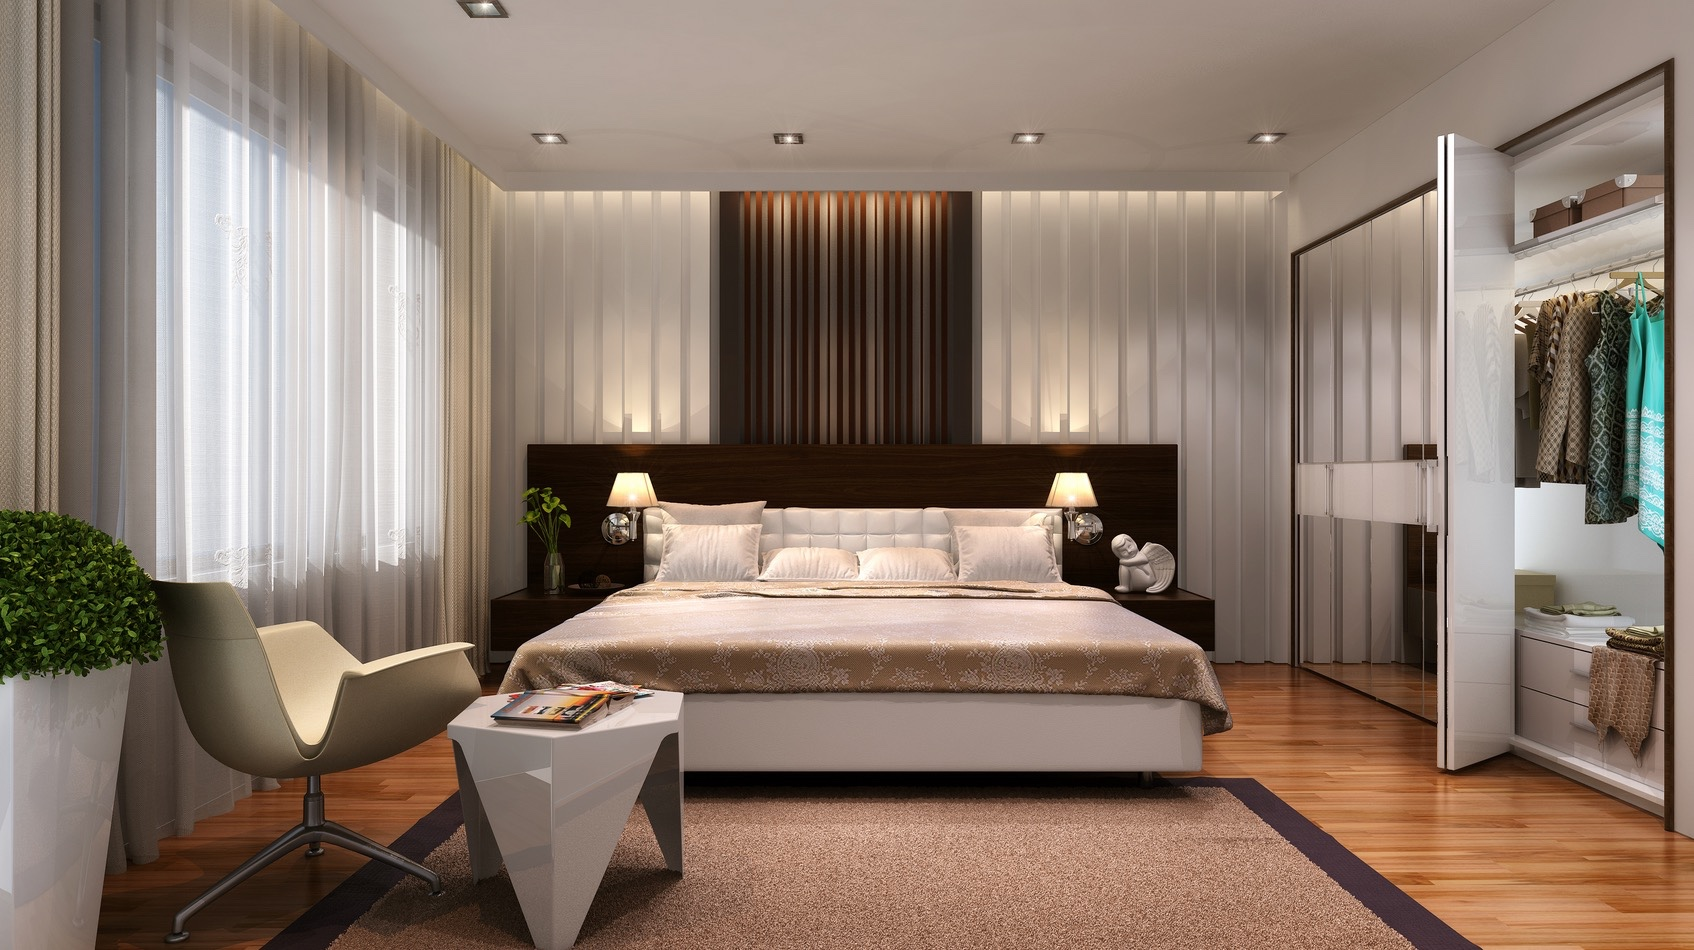 21 cool bedrooms for clean and simple design inspiration for Bedroom ideas pictures